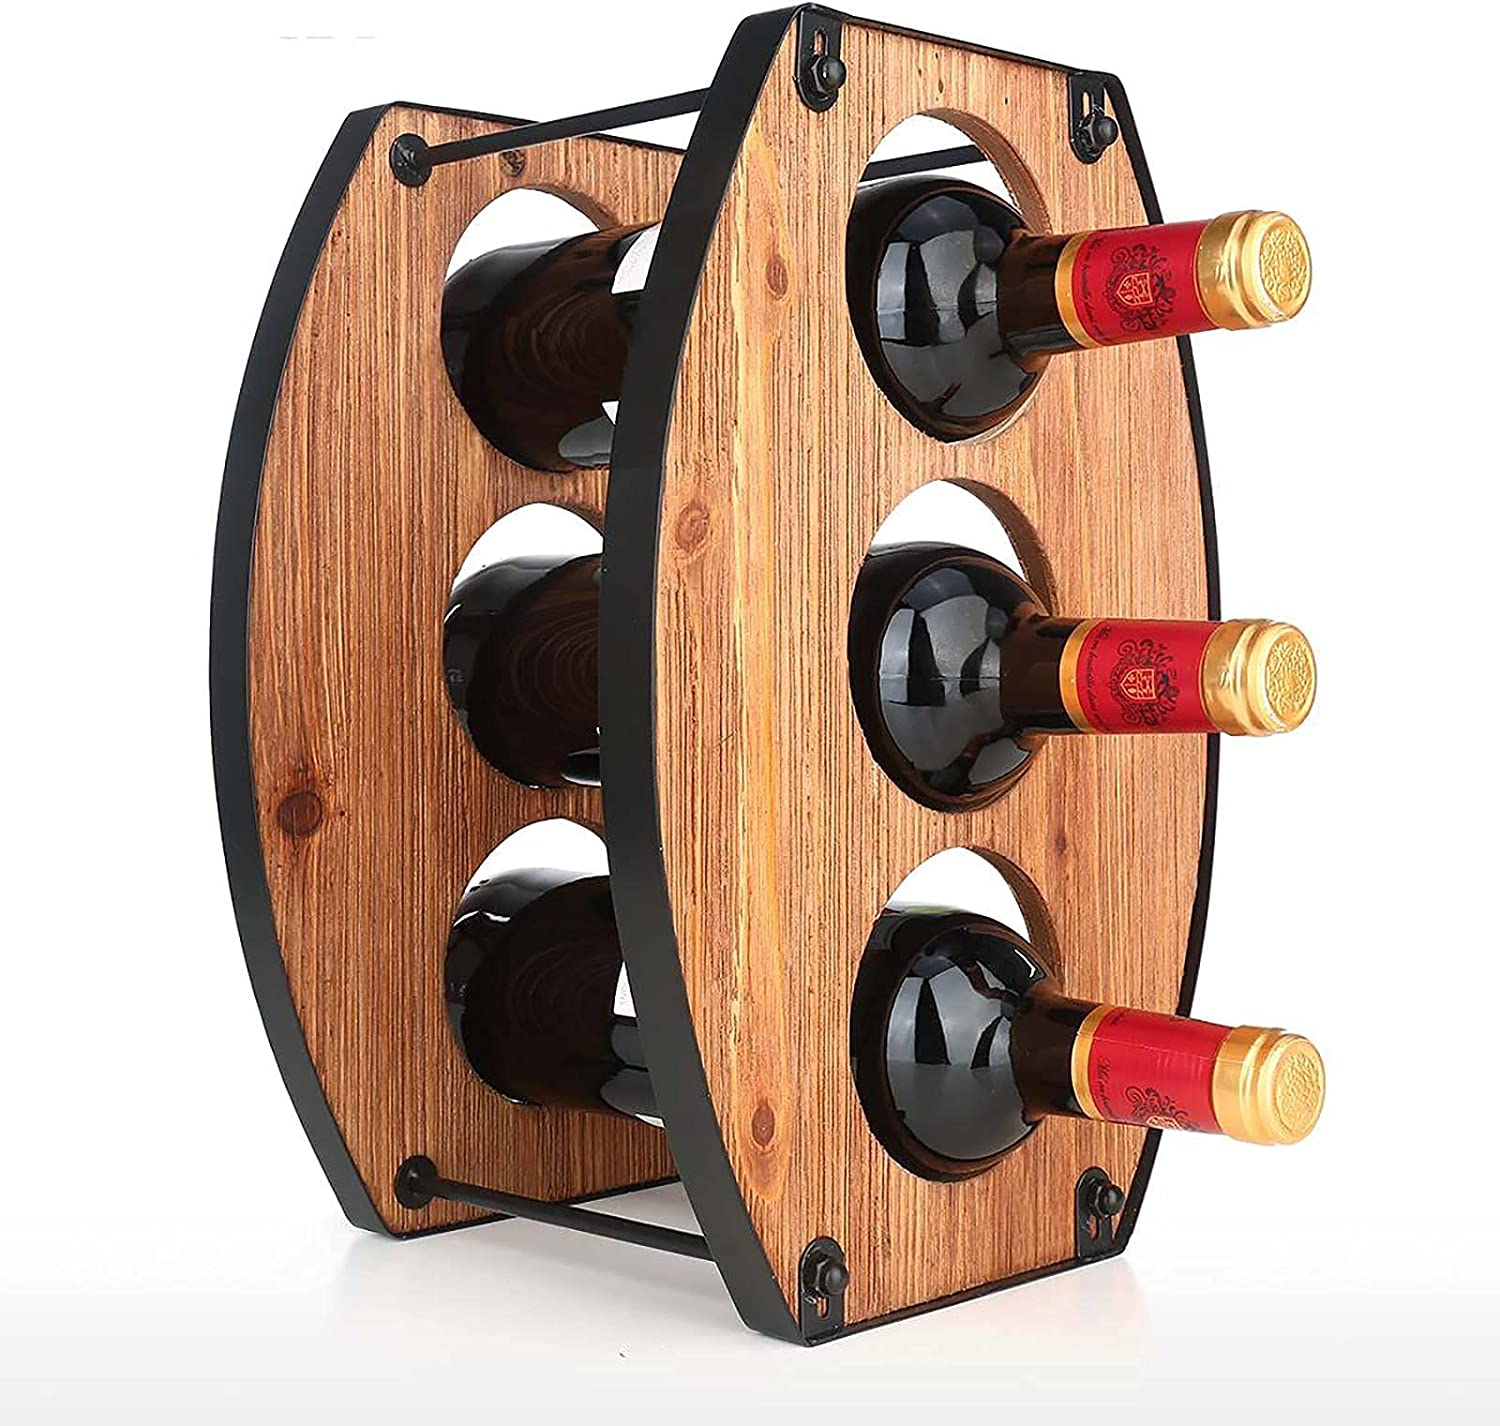 3 Bottles Tabletop Wine Holder B Iron Selling and selling Topics on TV Holes Three Removable